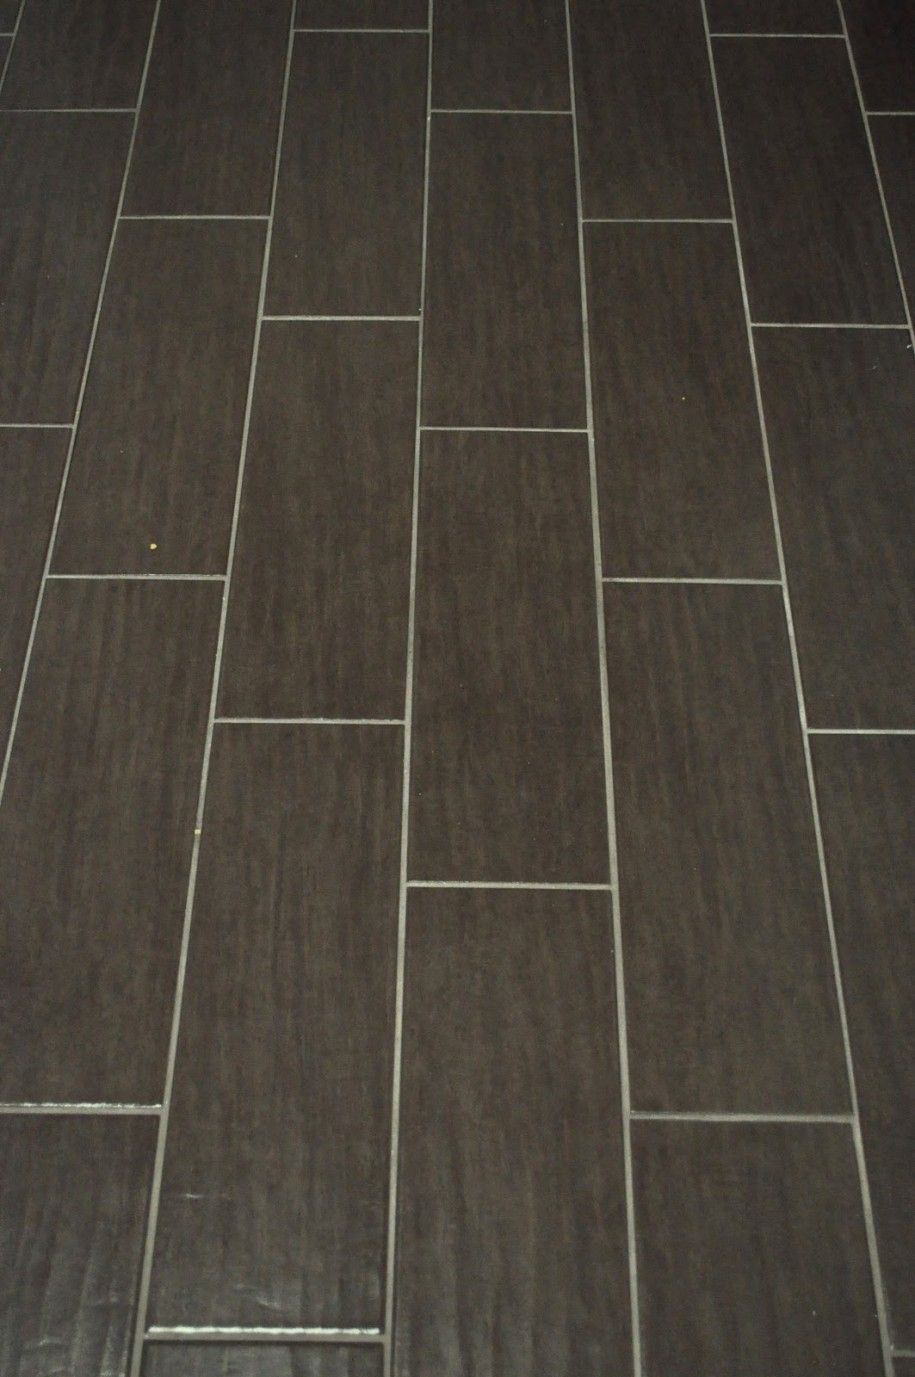 Dark brown floor tile grout httpnextsoft21 pinterest dark brown floor tile grout dailygadgetfo Image collections